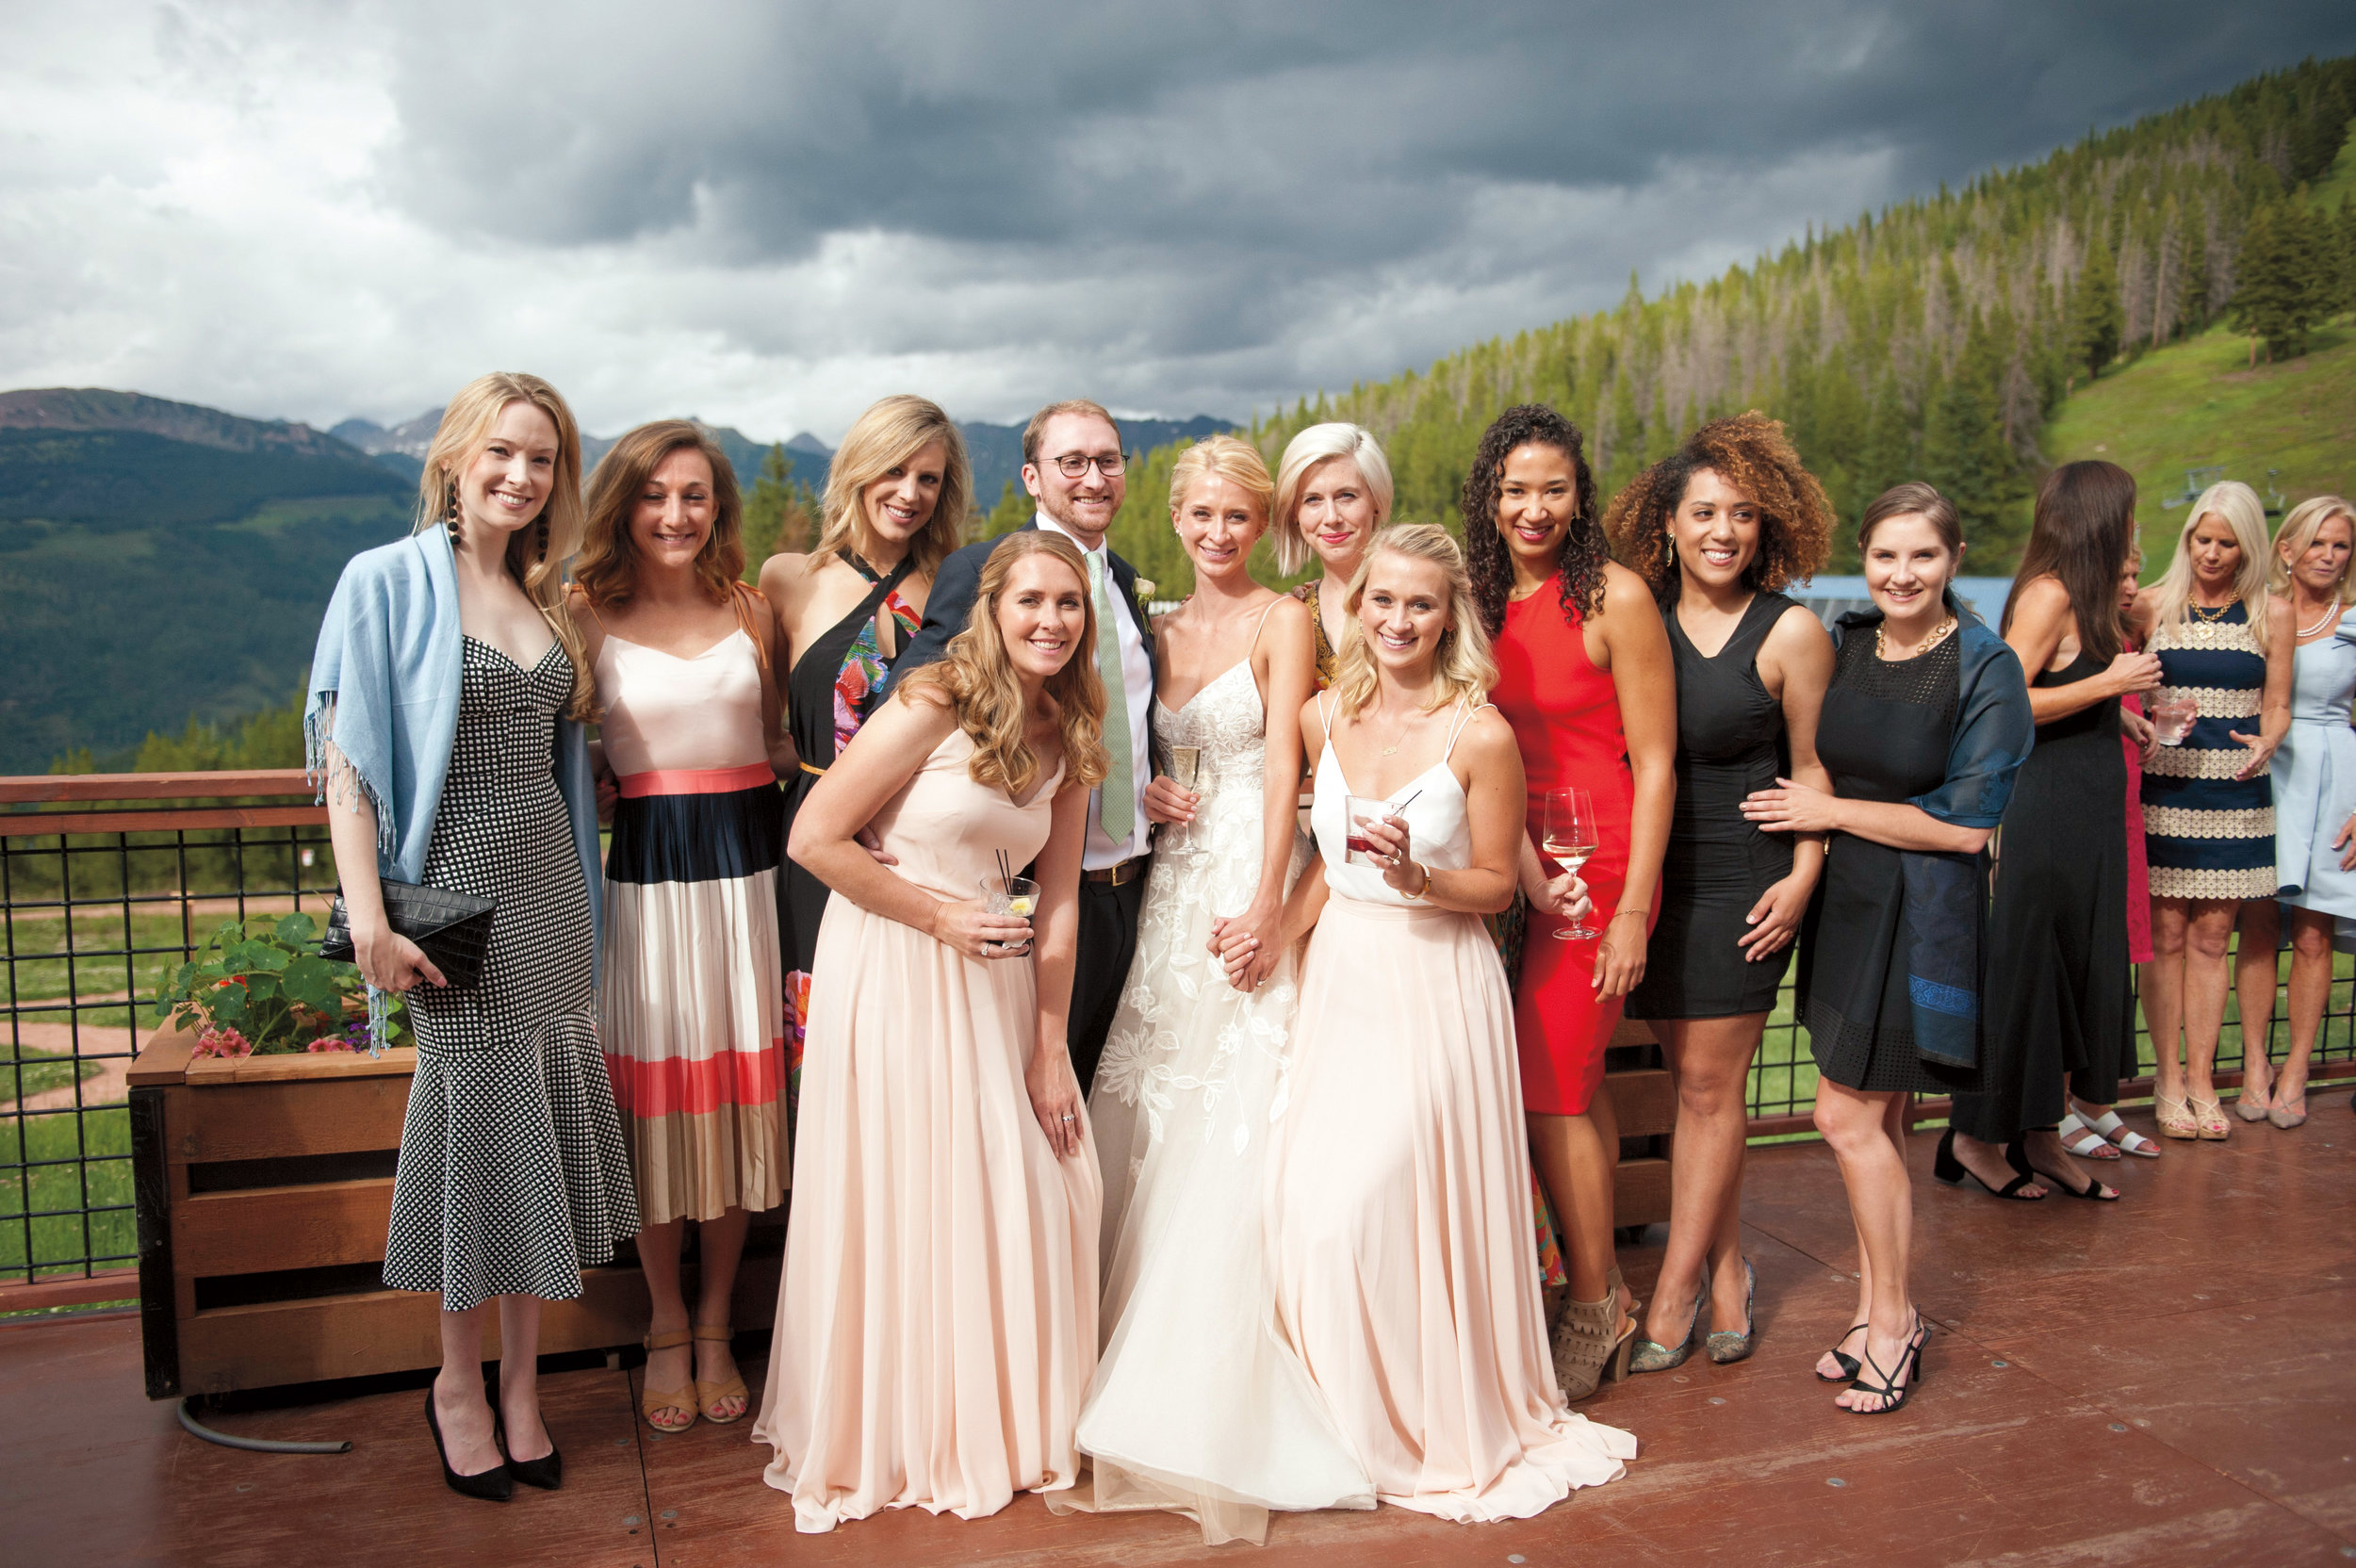 A number of SPS alumni enjoyed the wedding of Annie Wattles '06 and Will Geier: (l. to r.), back: Anna Barden '06, Caroline Walsh '06, Claire Beeukwes '06, Michael Wattles '04, Annie, Marian Bull '06, Jen Parker '05, Caroline Randall Williams '06, Caila Johnson '06; front: Vanessa Wattles '00, and Erin Wattles '09.